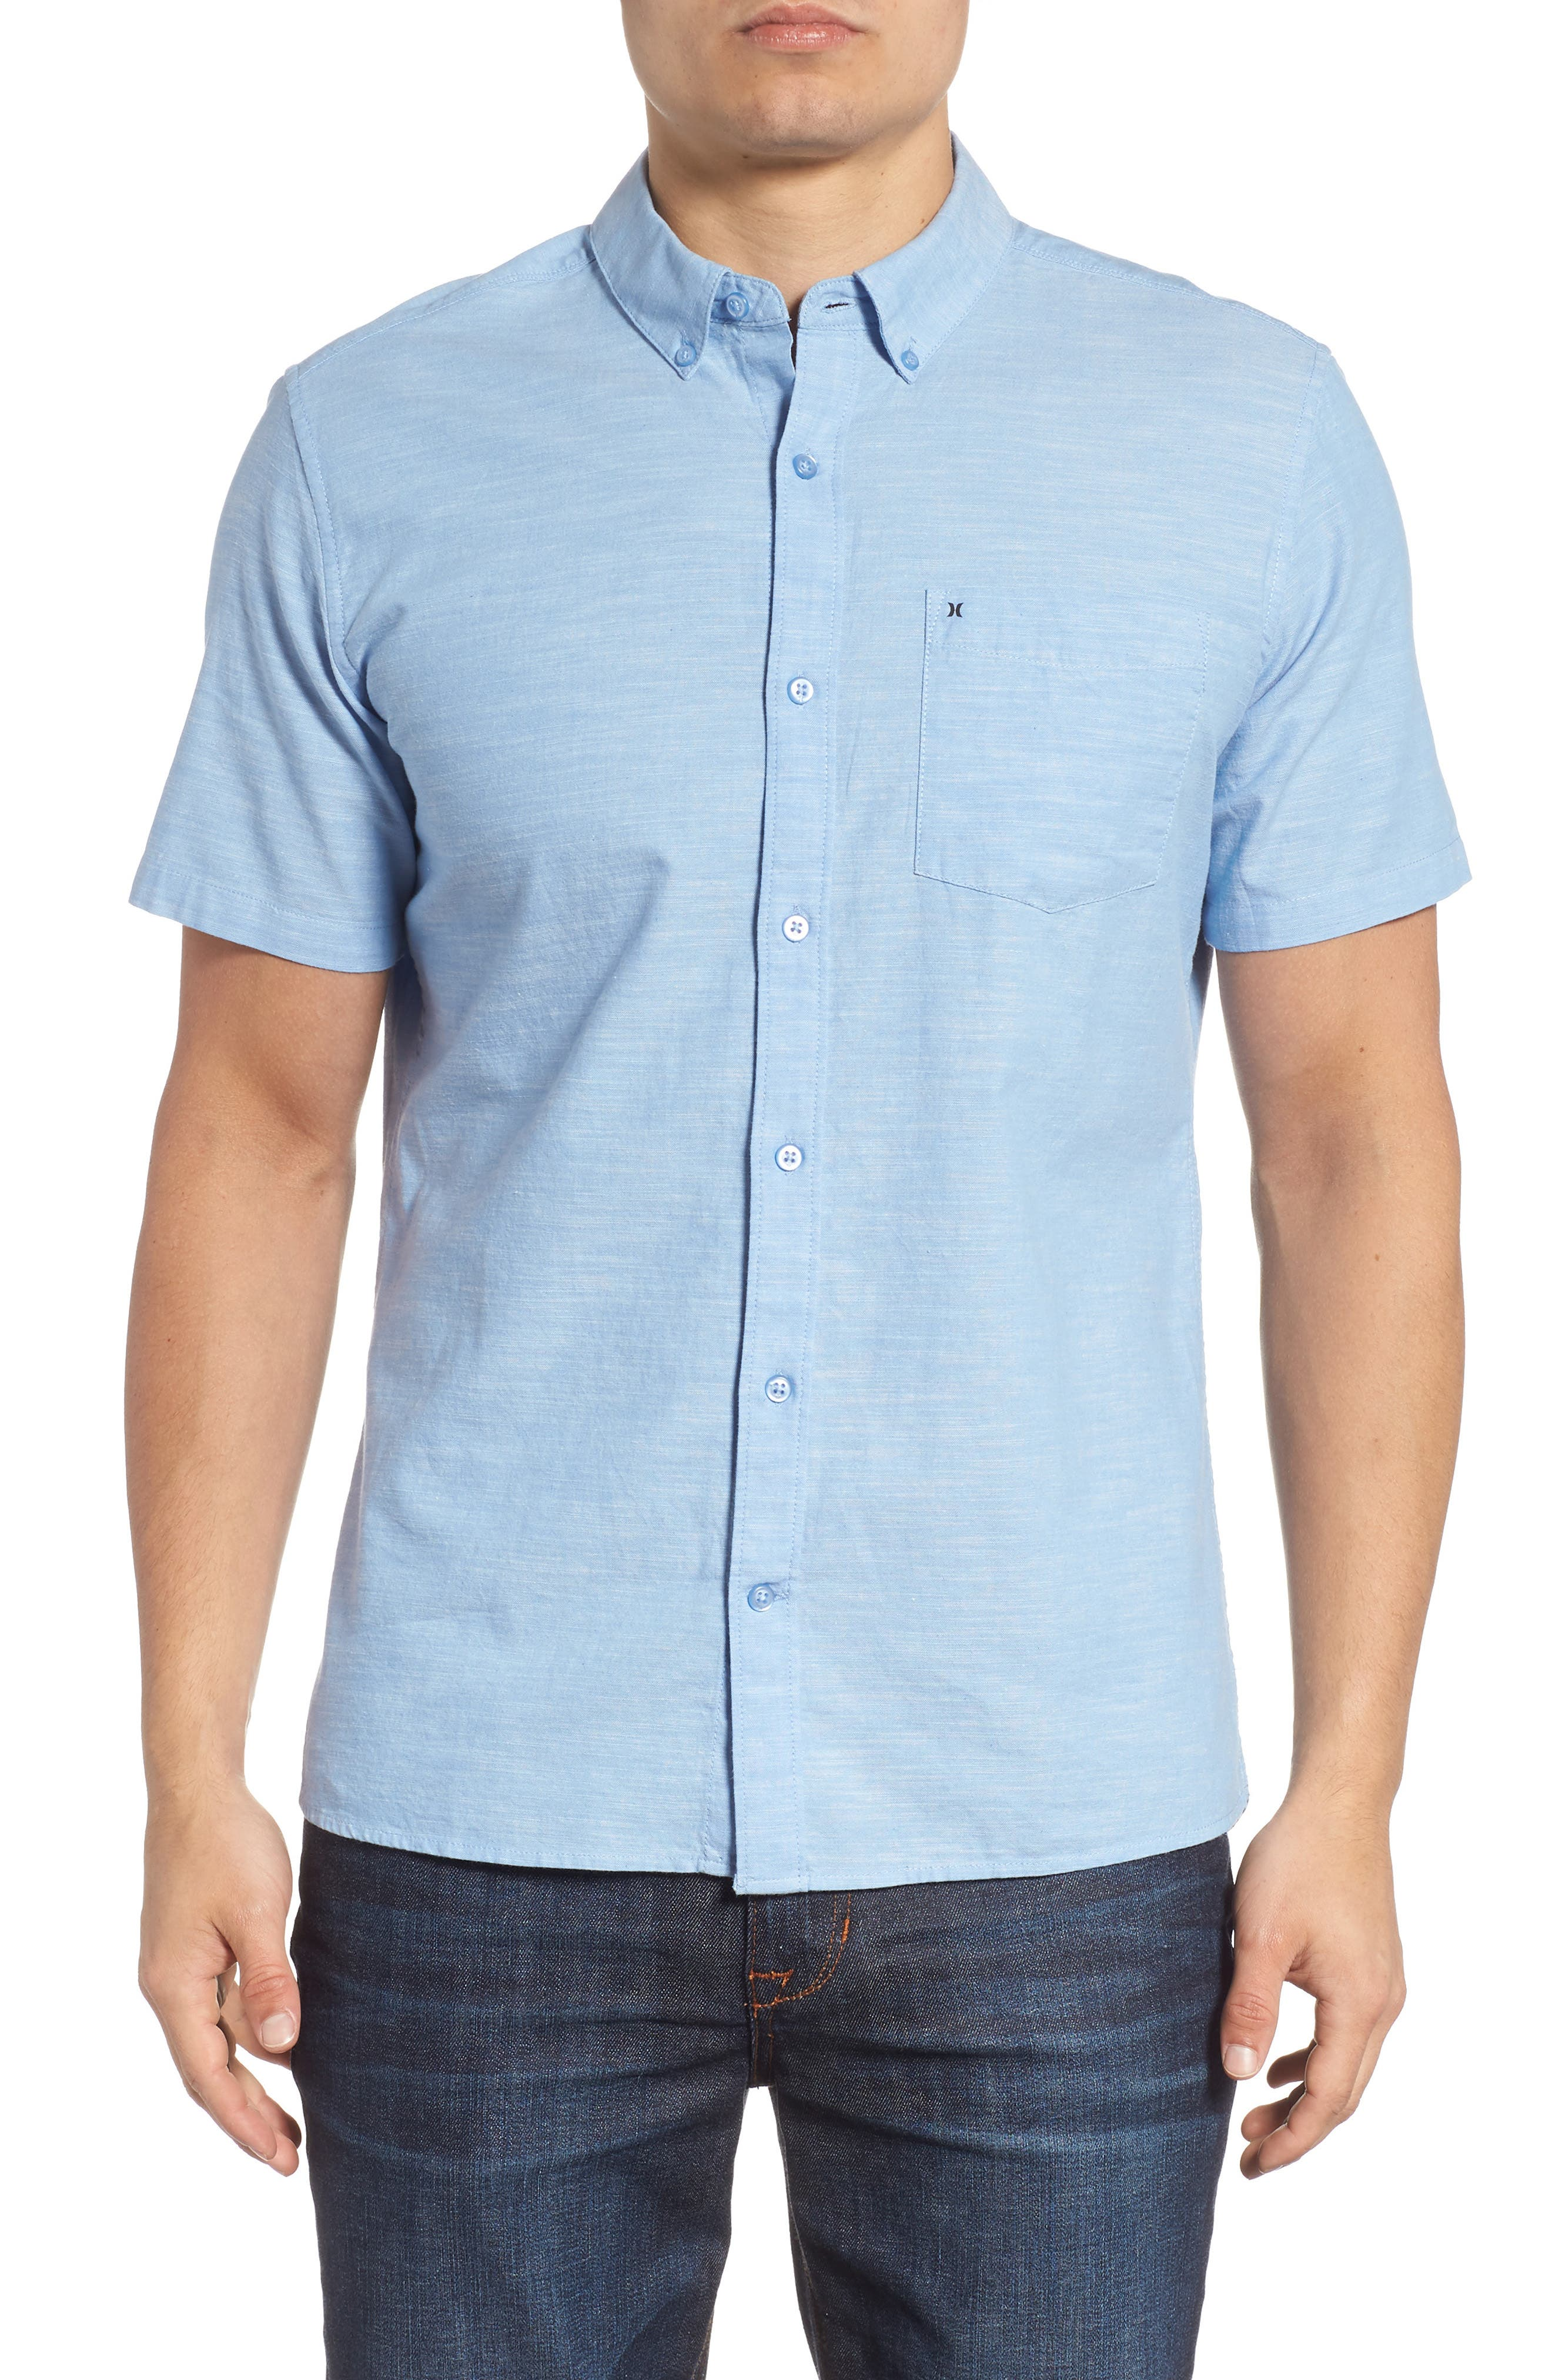 One & Only 2.0 Woven Shirt,                         Main,                         color, BLUE OX